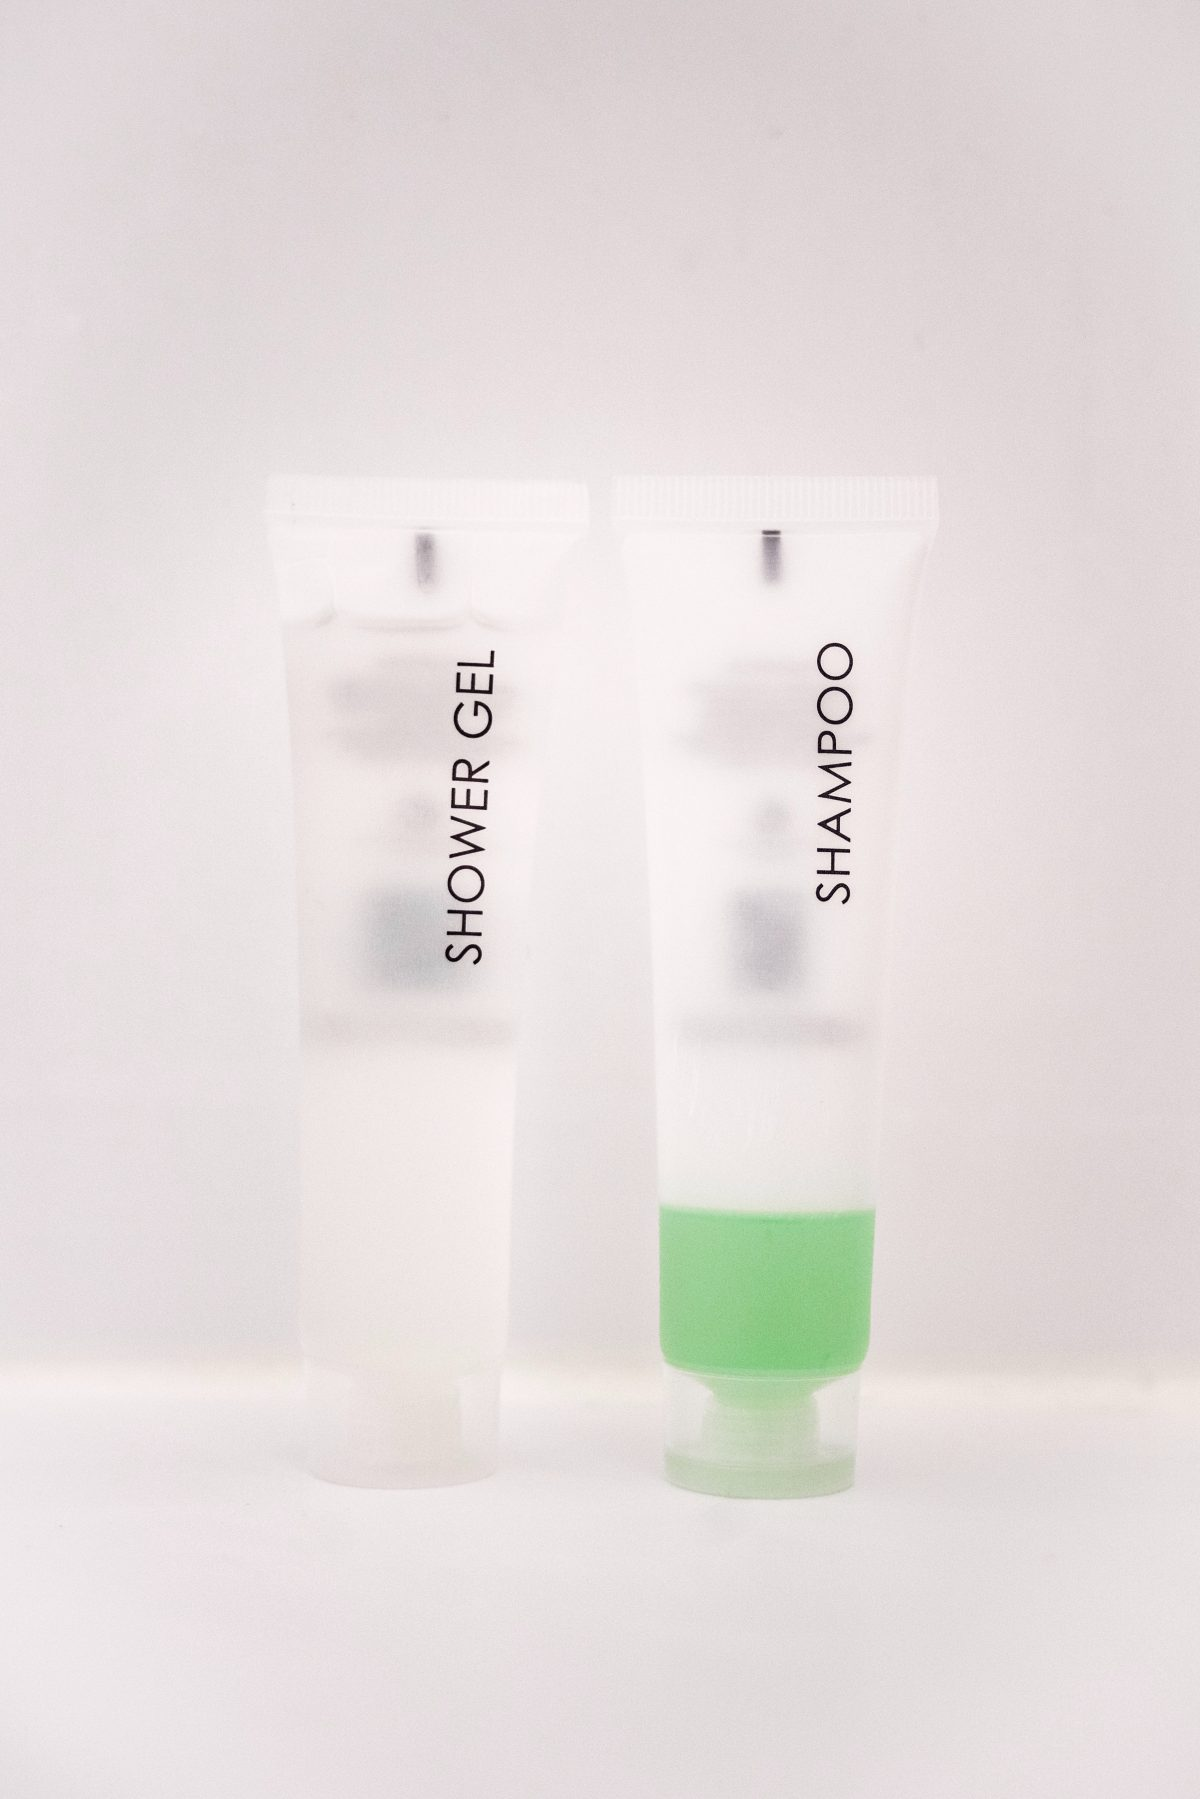 Travel toiletries in small packages